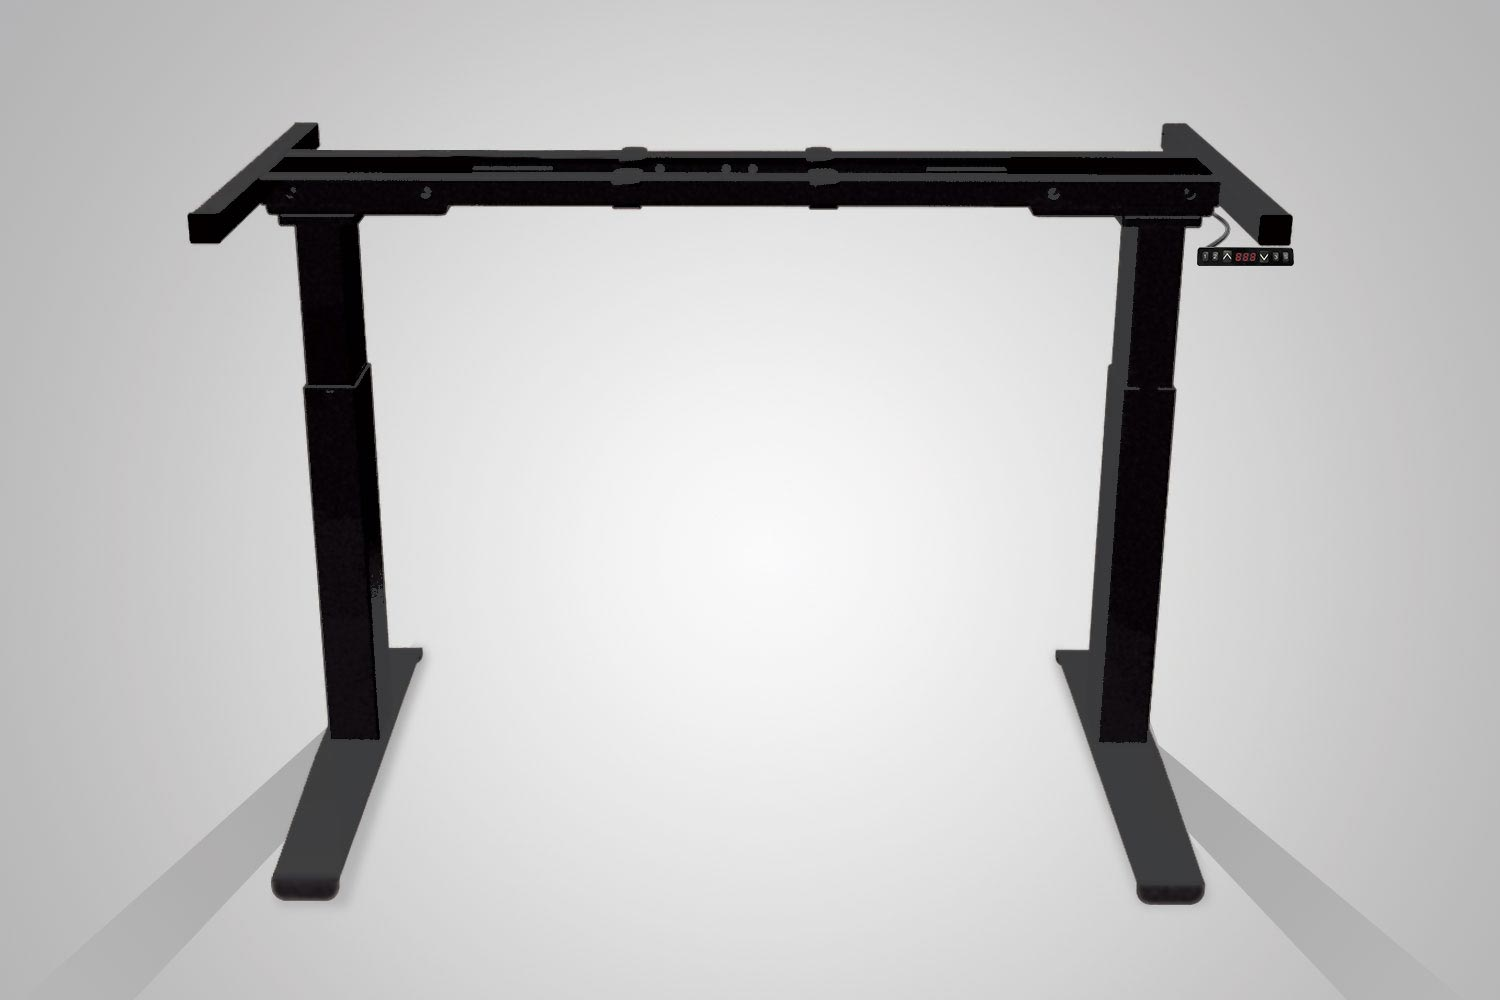 MultiTable Mod-E Pro Electric Standing Desk Frame